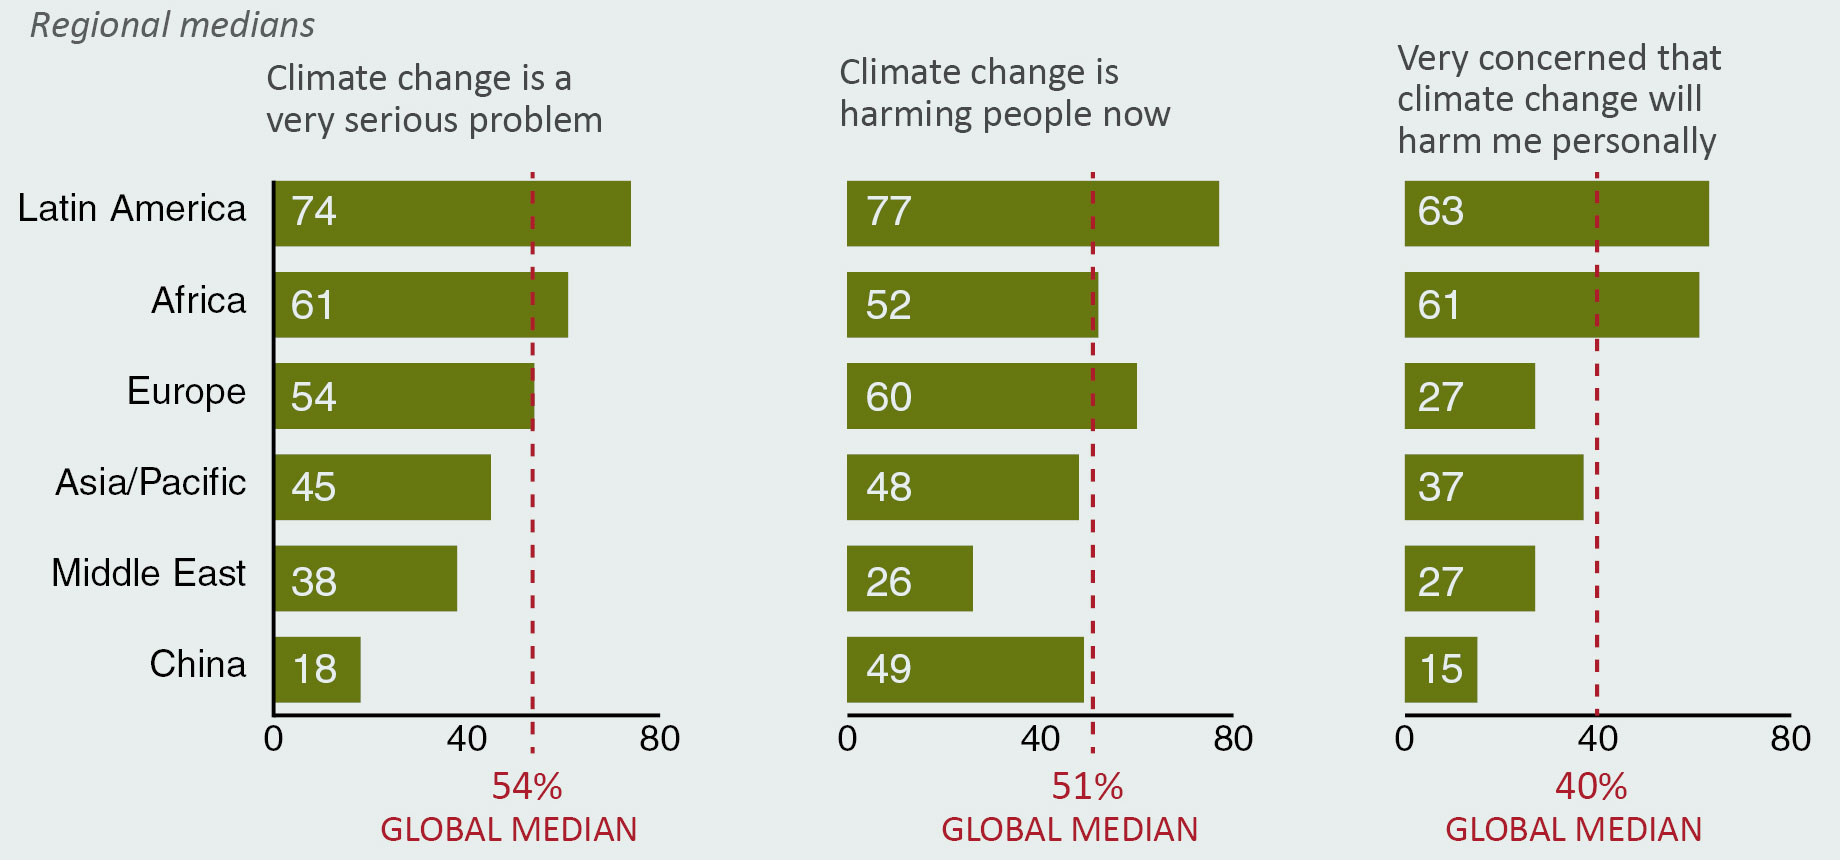 Chart showing Latin America, Africa More Concerned About Climate